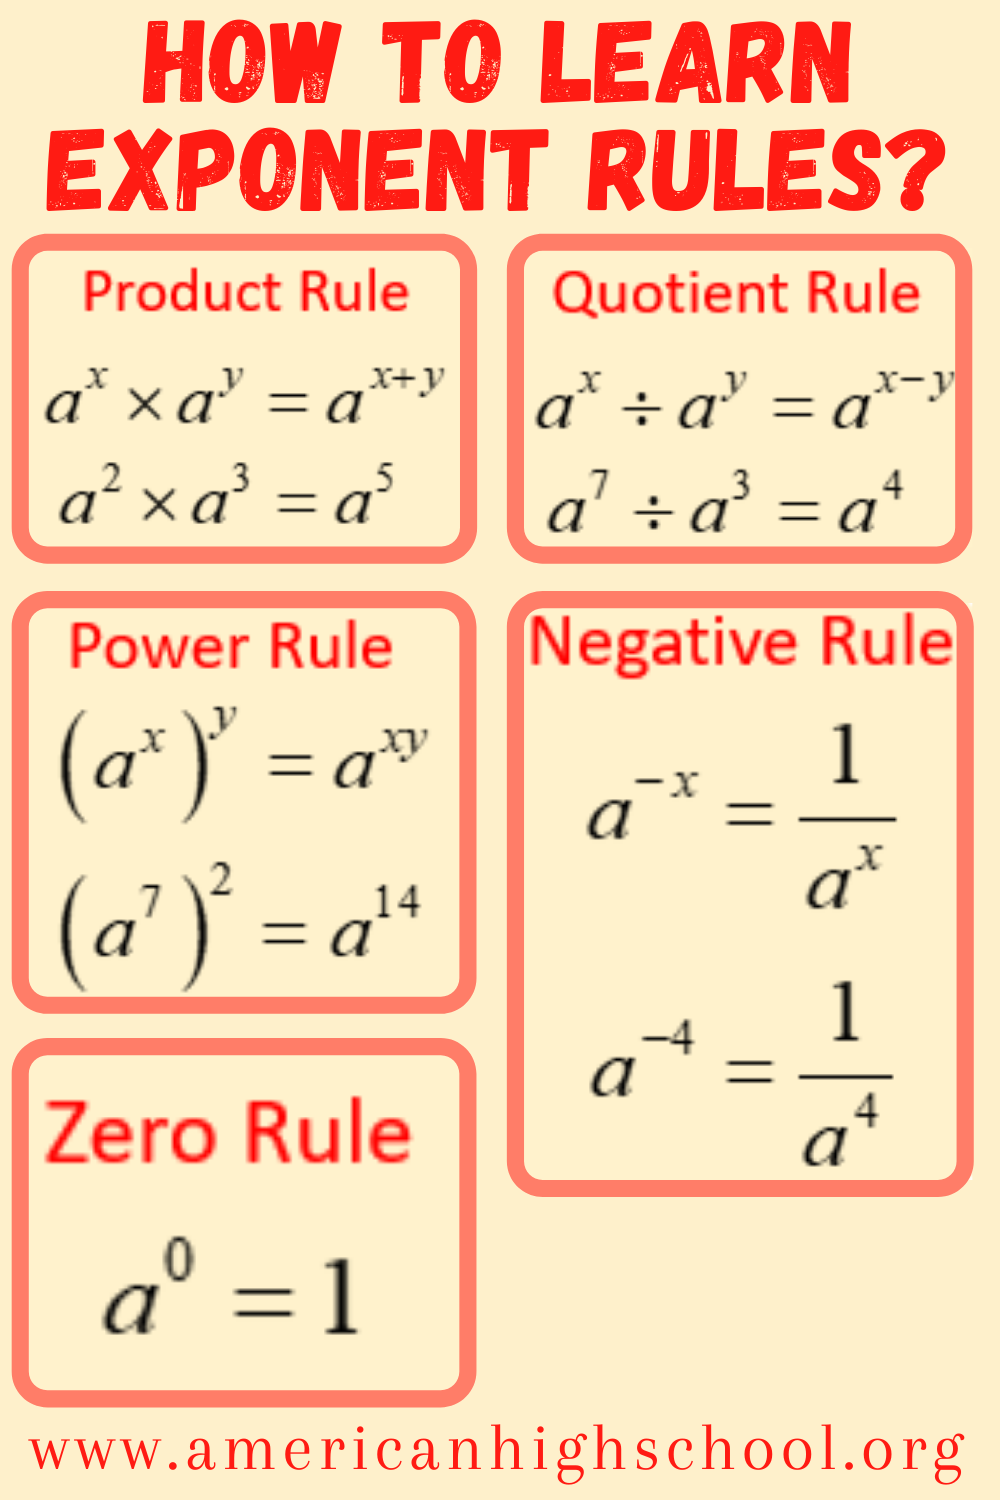 medium resolution of How to Learn Exponent Rules?   Studying math